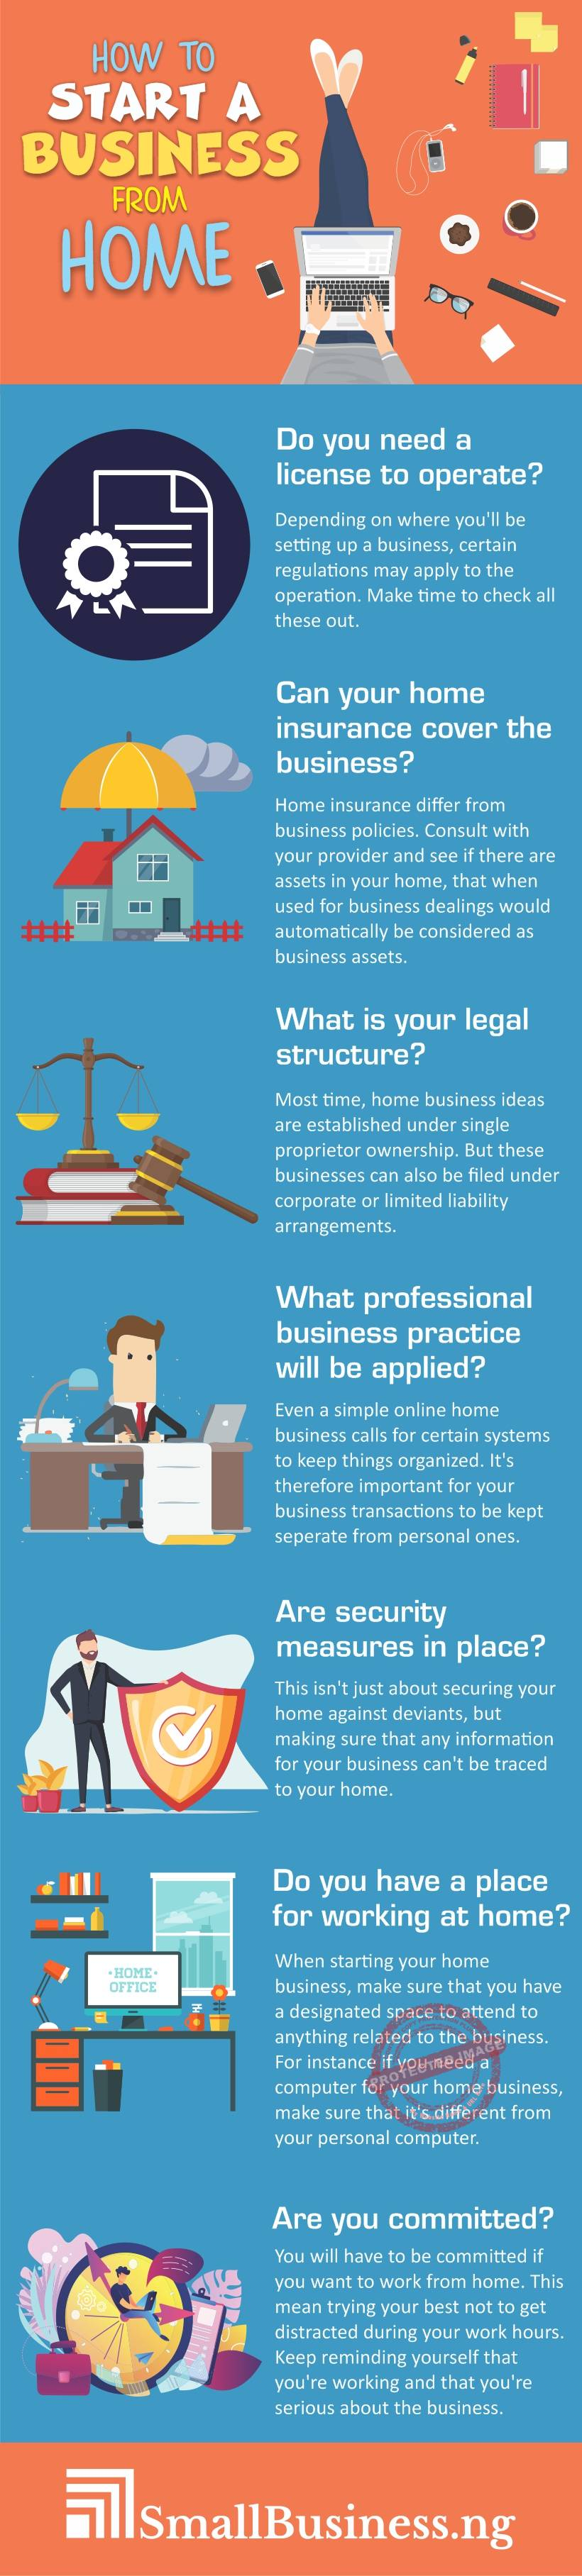 How to start a Business from Home Infographic